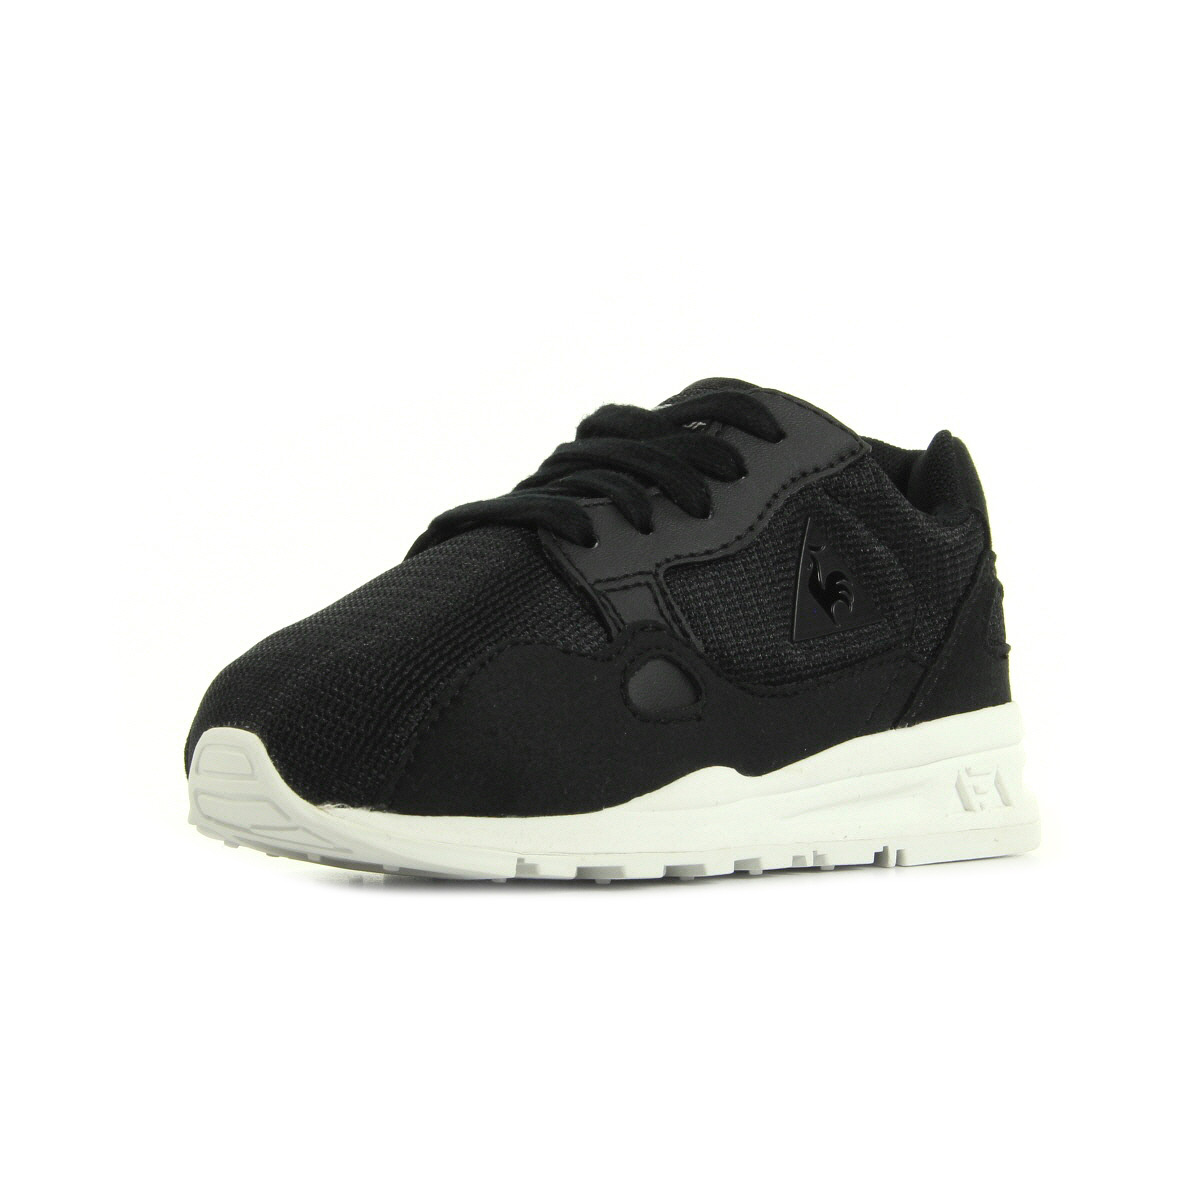 le coq sportif lcs r900 inf mesh 1610599 chaussures homme homme. Black Bedroom Furniture Sets. Home Design Ideas